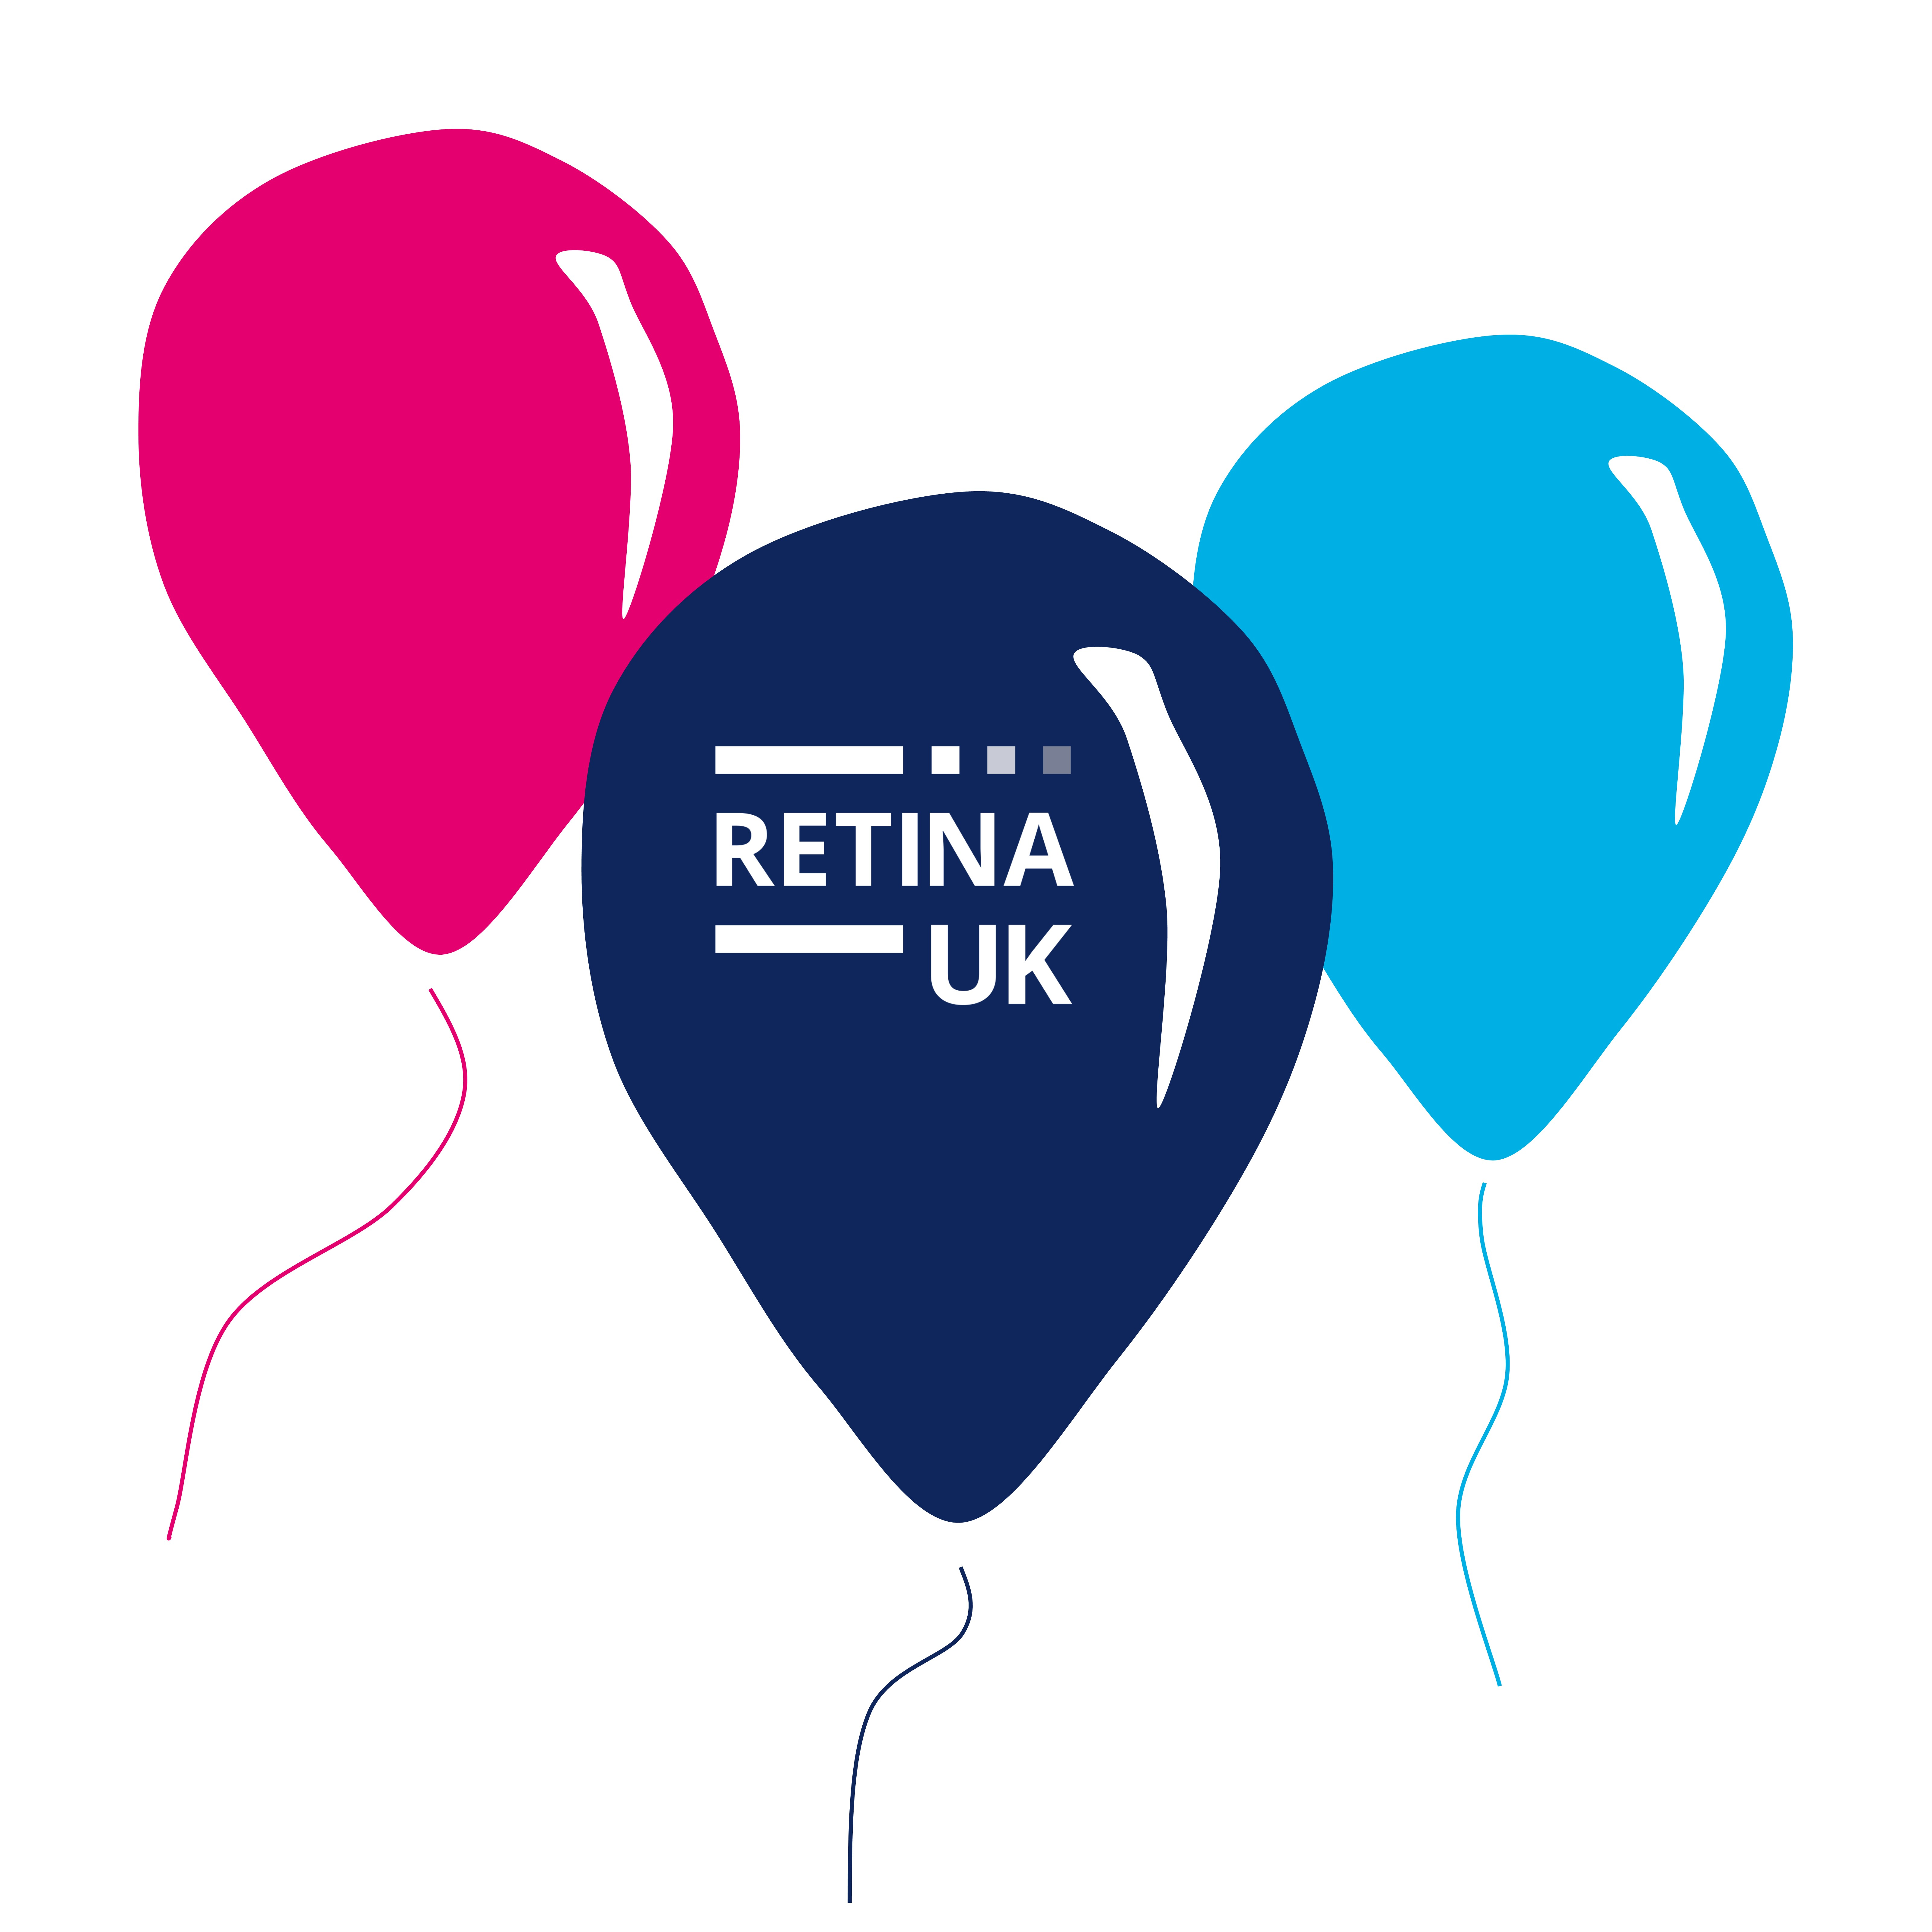 Image shows a pink, a dark blue and a light blue cartoon birthday balloons. The dark blue balloon has the Retina UK logo shown in white.